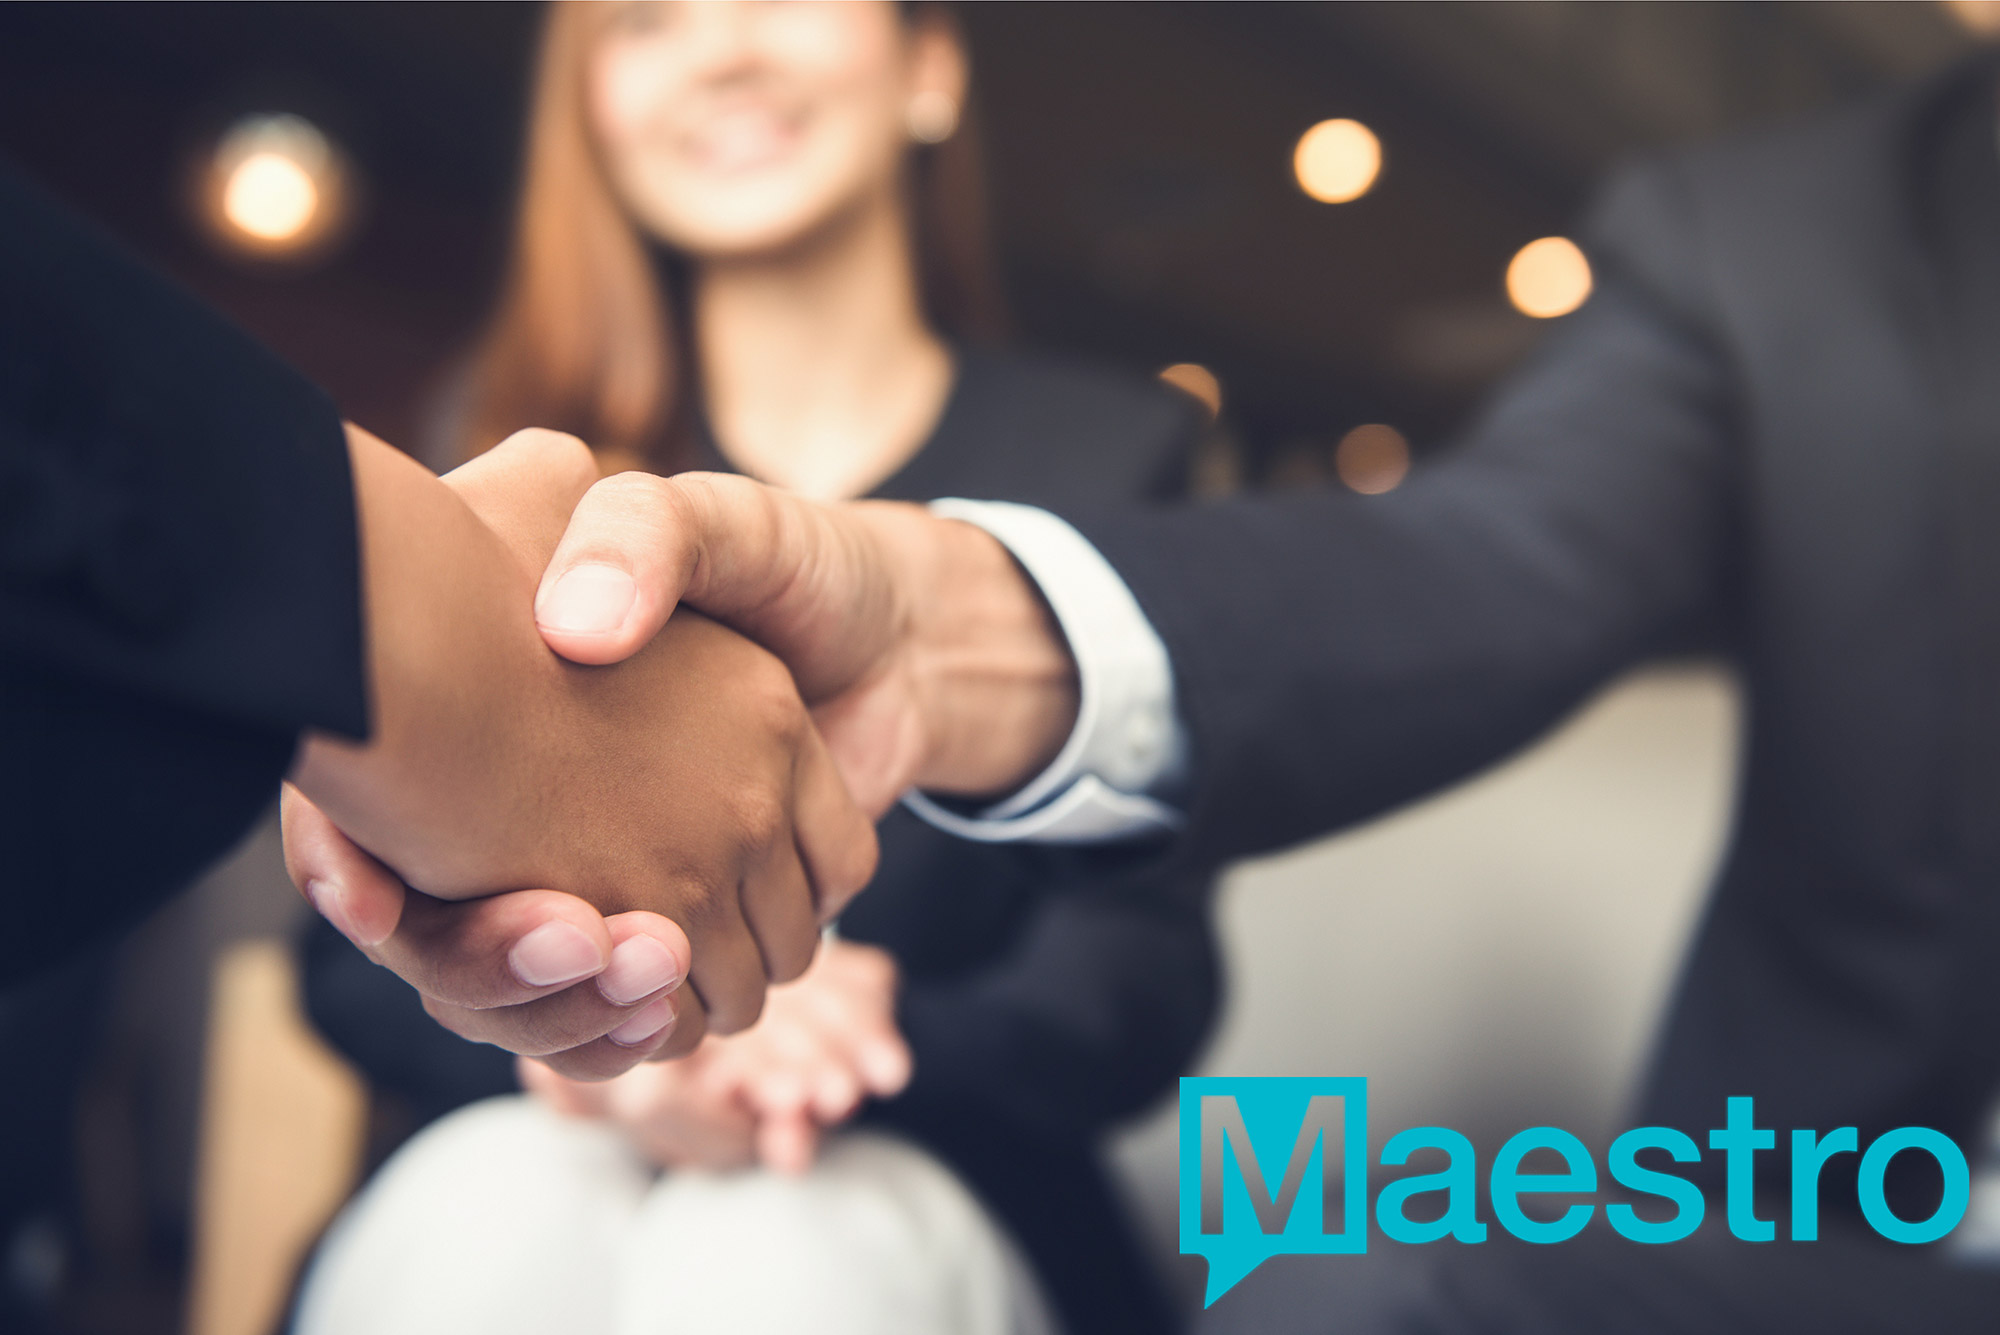 maestro hotel 03 - 4 Culture Attributes a PMS Technology Company Must Possess to Help Ensure Your Property's Success - By Warren Dehan - Innovative Property Management Software Solutions Powering Hotels, Resorts & Multi‑Property Groups.